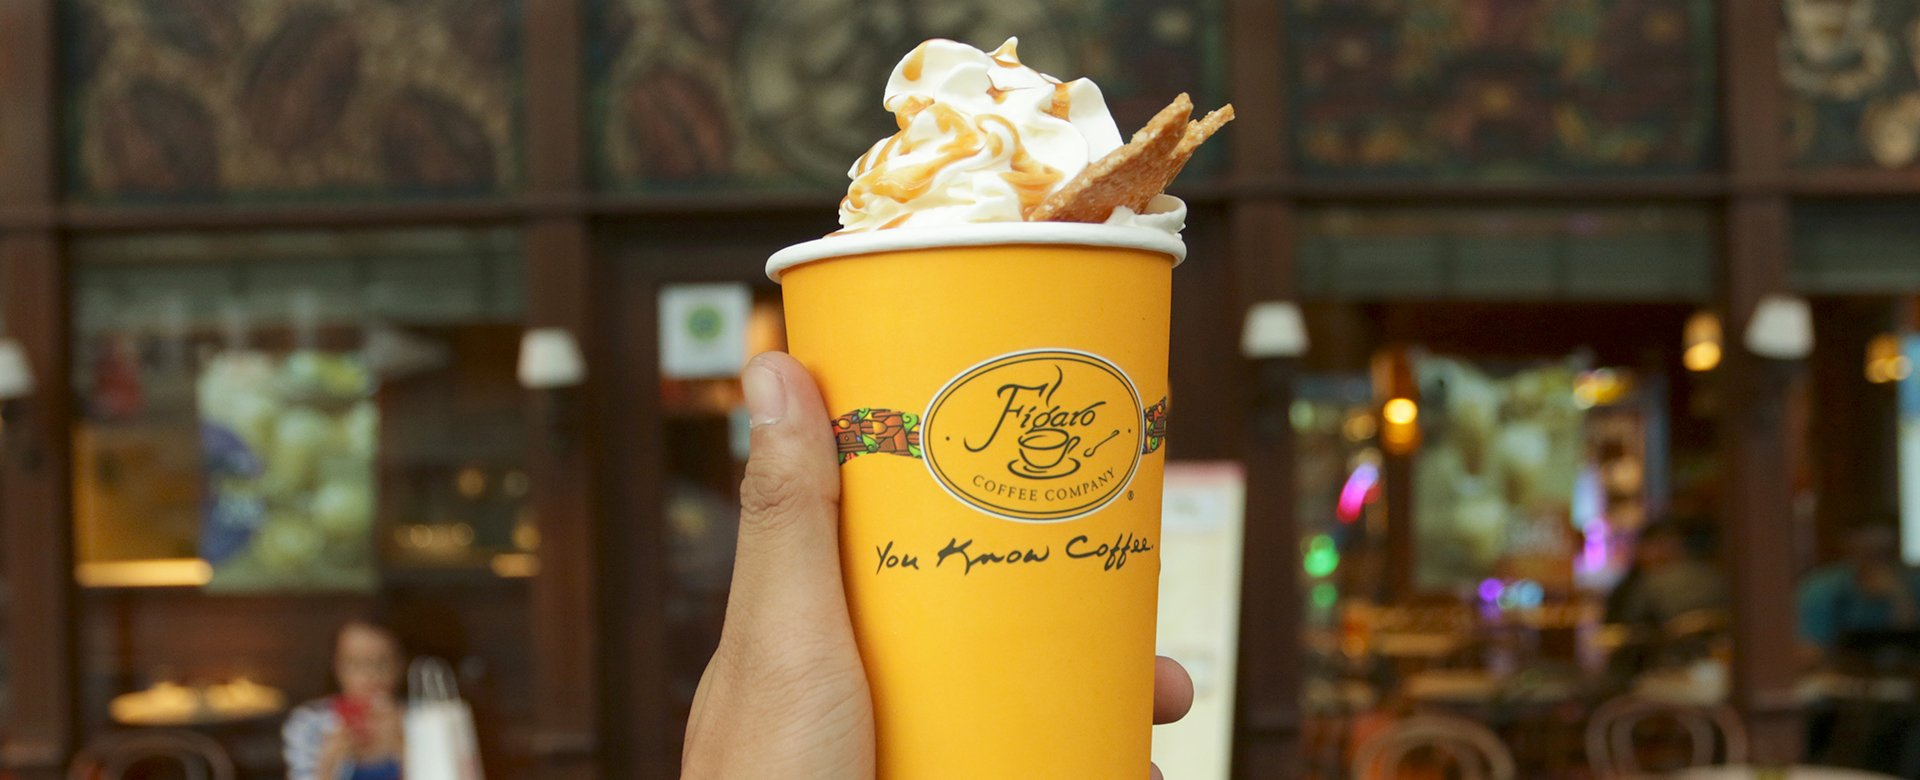 figaro coffee Homegrown coffee chain figaro coffee co is brewing plans to go big abroad with the opening of about 40 stores in the middle east over the.